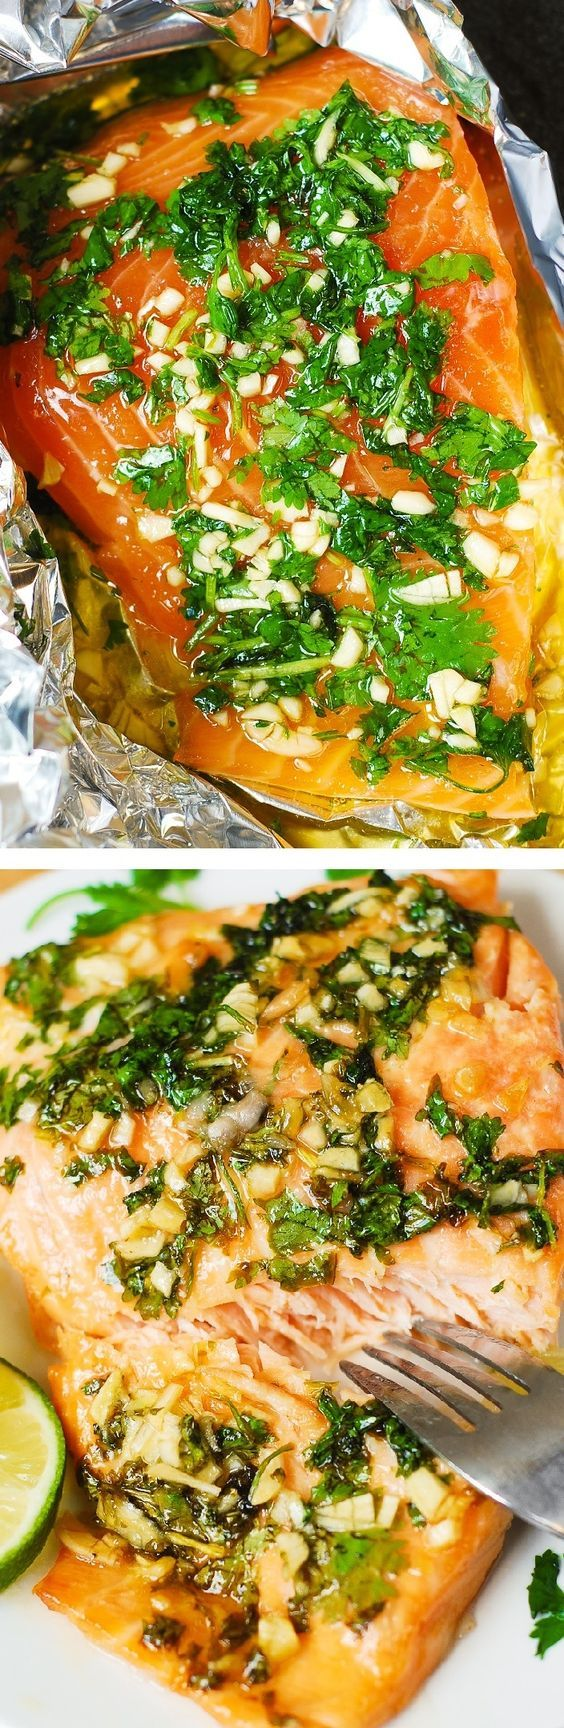 Cilantro-Lime Honey Garlic Salmon (baked in foil) - Easy, healthy recipe that takes 30 minutes from start to finish!